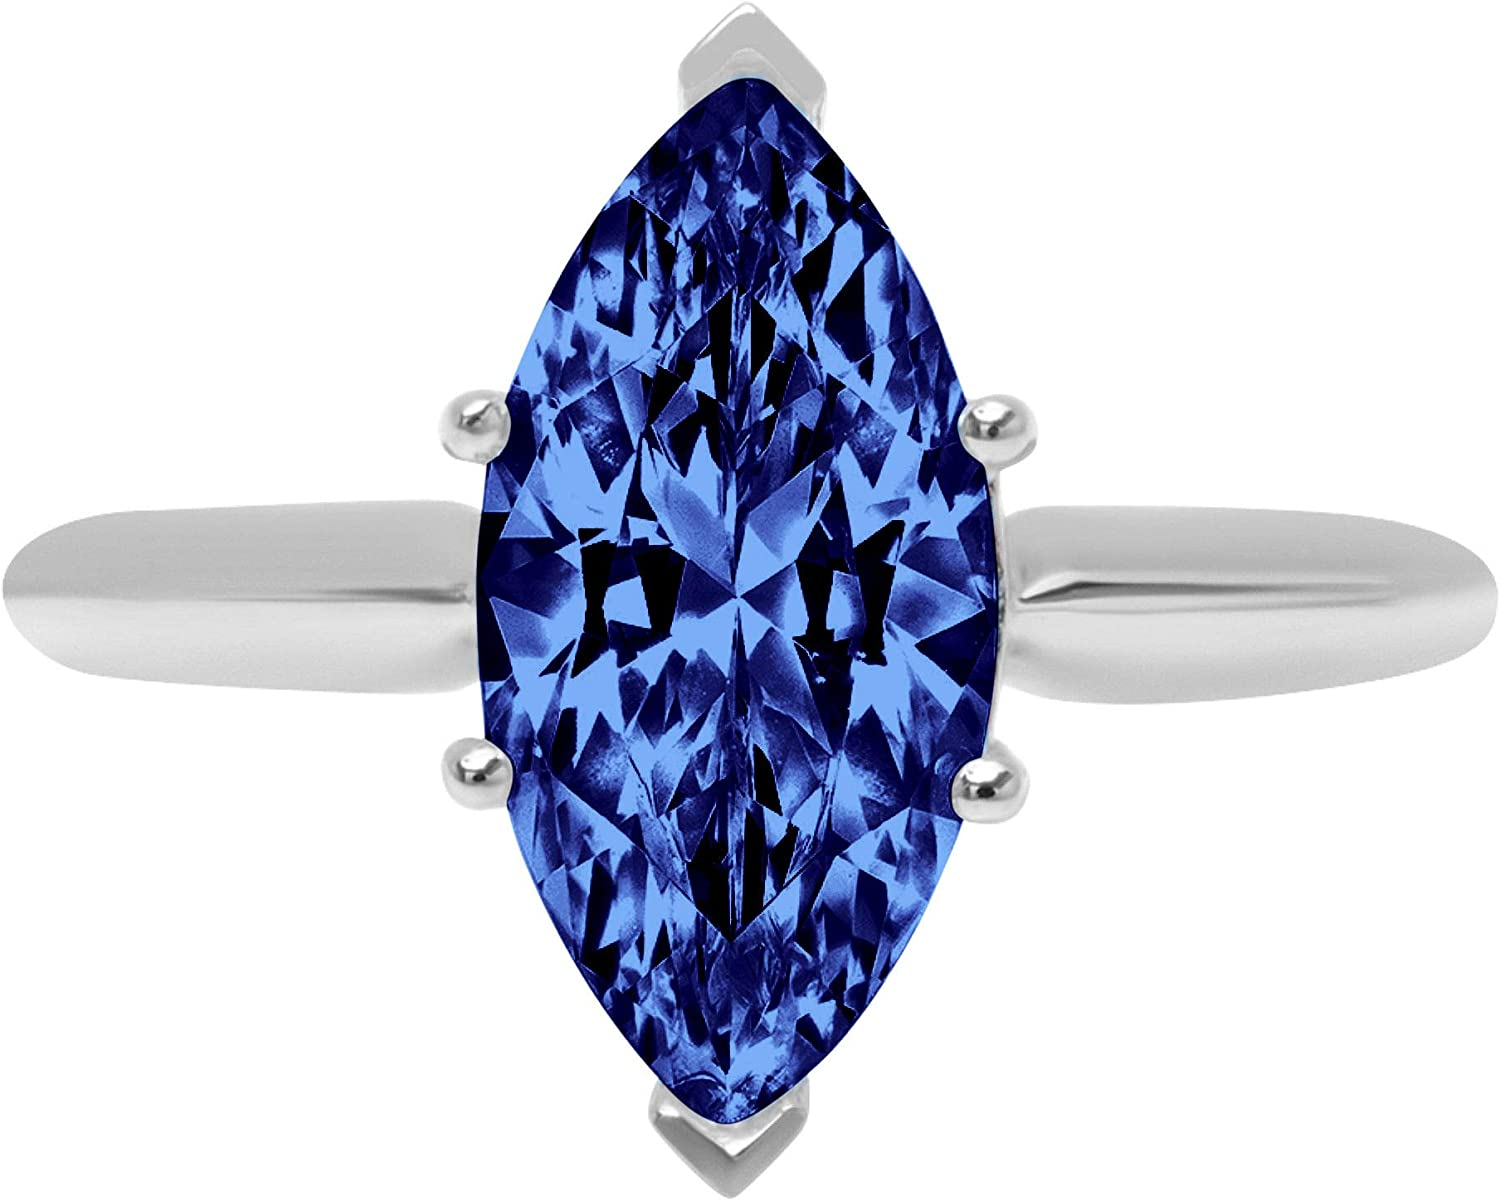 2.45 ct Brilliant Marquise Cut Solitaire Flawless Simulated CZ Blue Tanzanite Ideal VVS1 6-Prong Engagement Wedding Bridal Promise Anniversary Designer Ring Solid 14k White Gold for Women